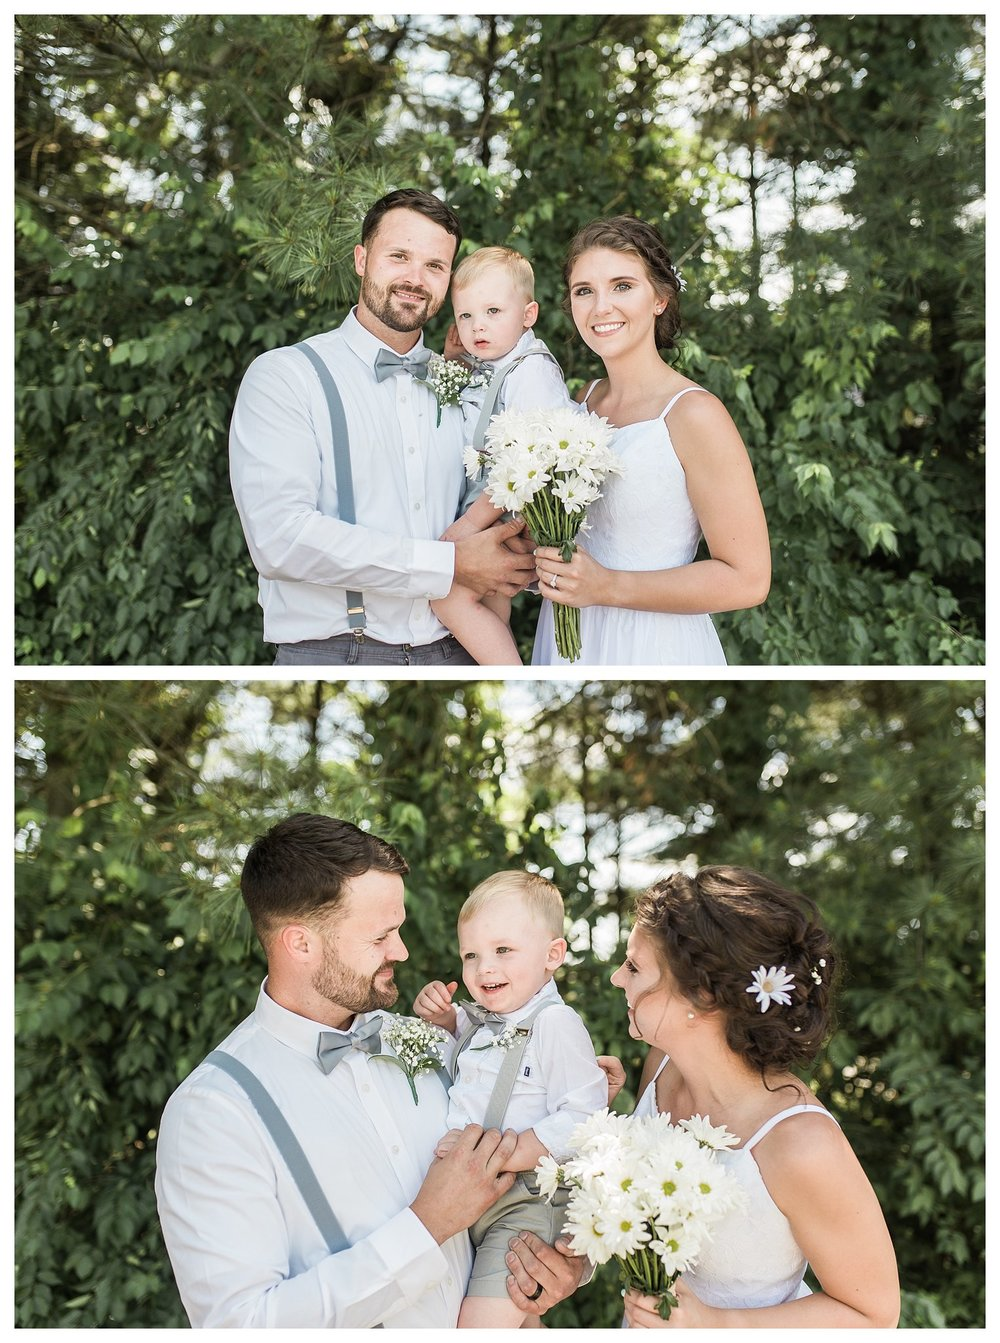 everleigh-photography.-cincinnati-wedding-photographer-at-the-barn-winery-17